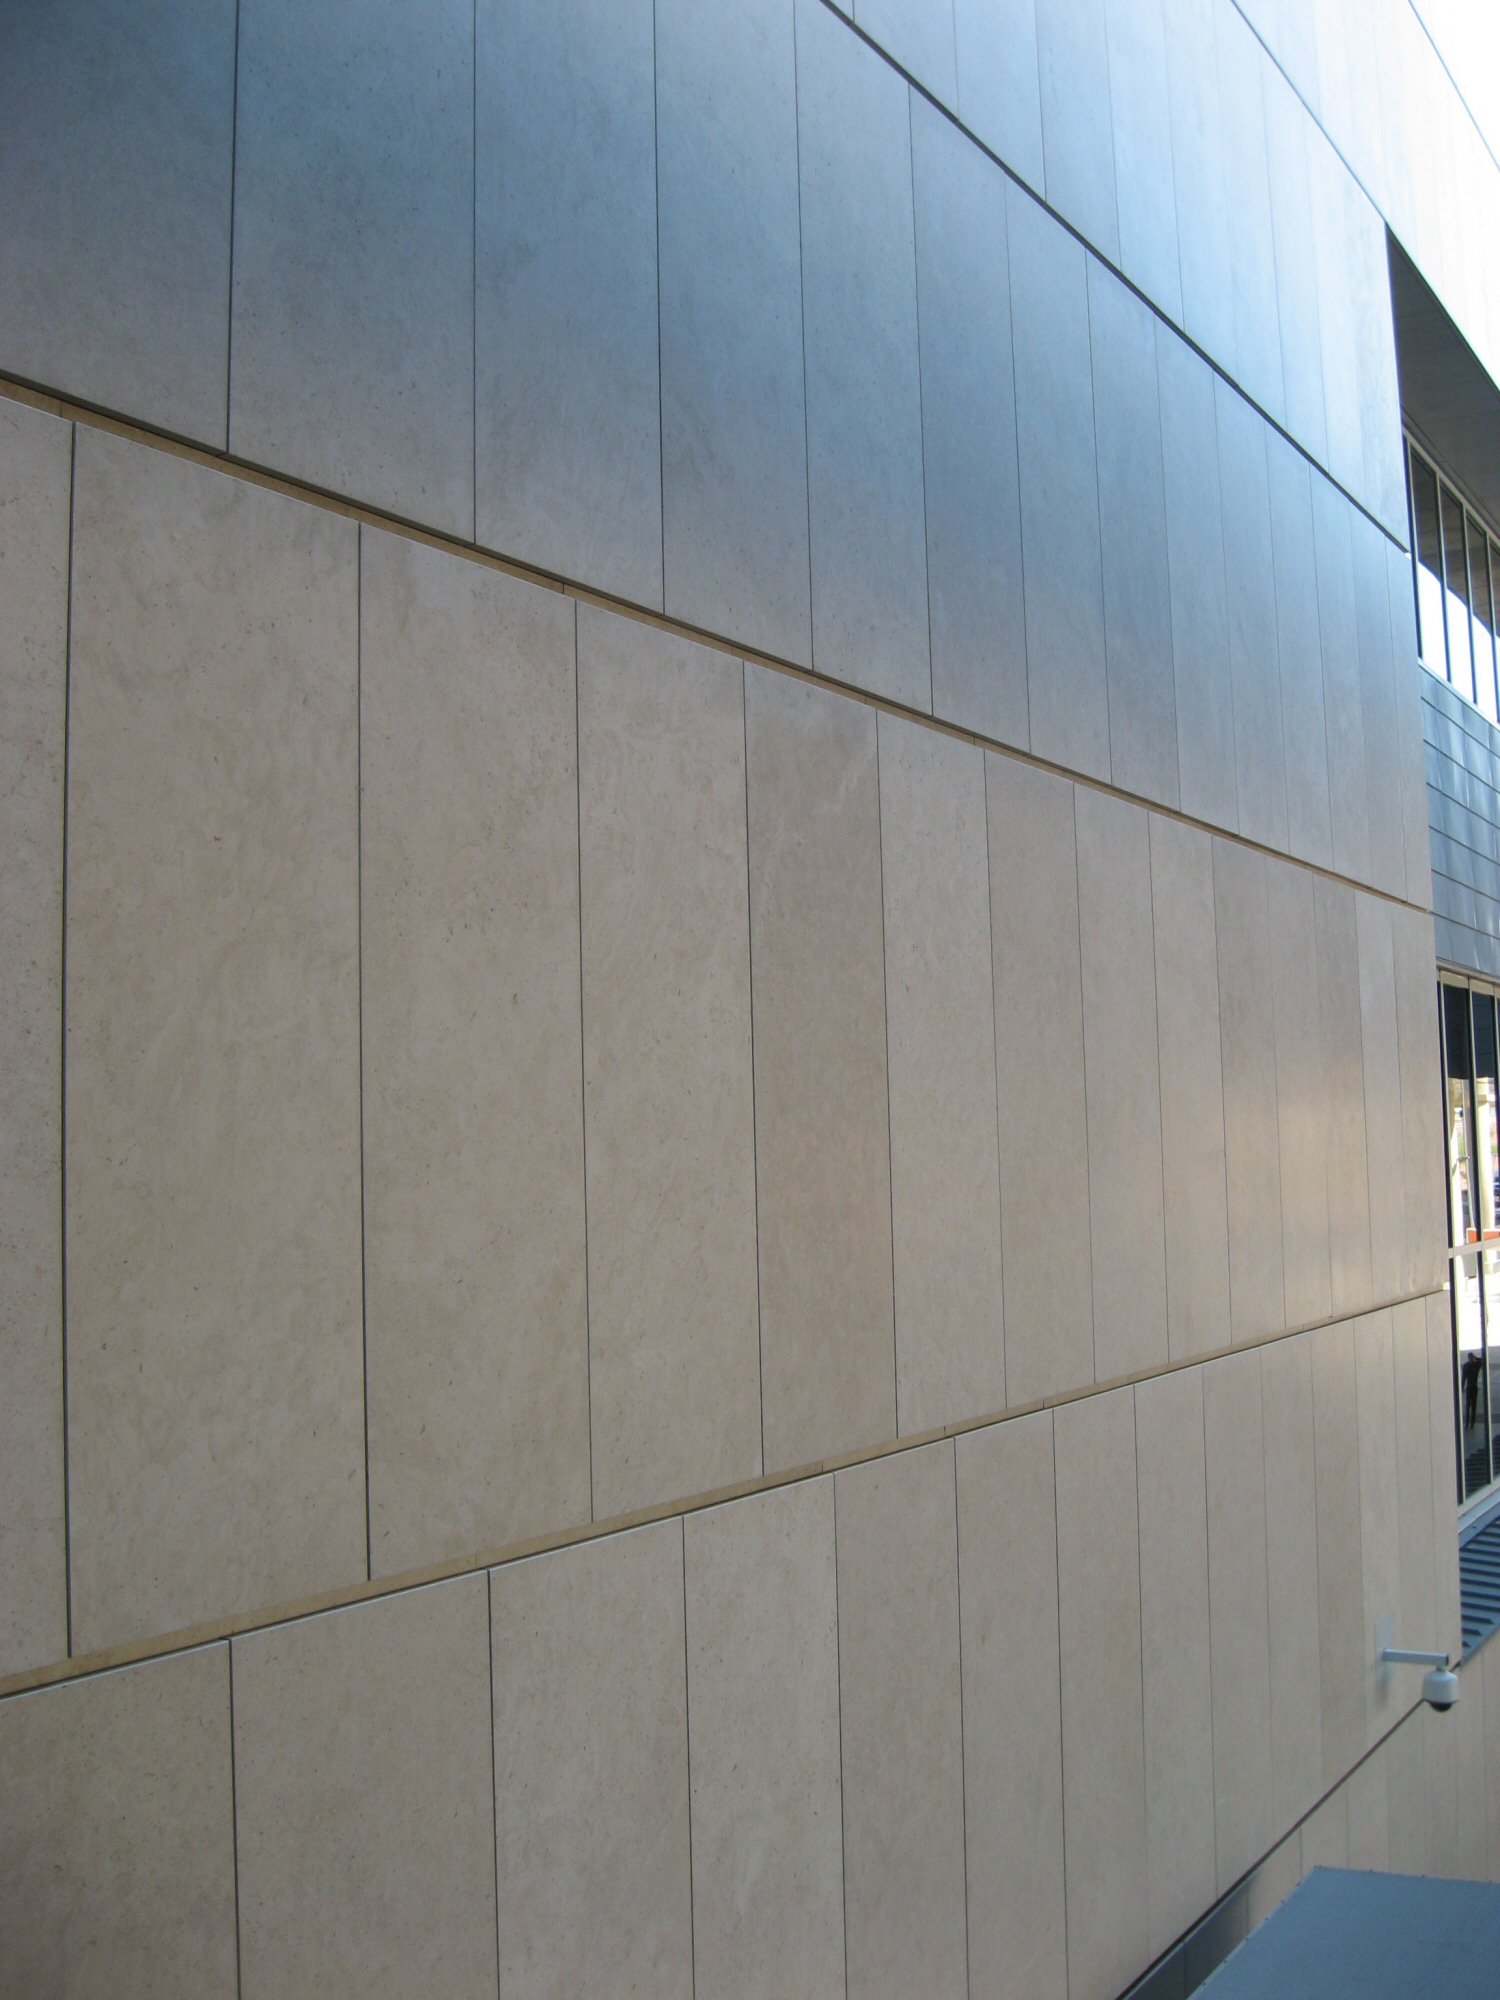 Stone Panels International Mccarran Airport Terminal 3